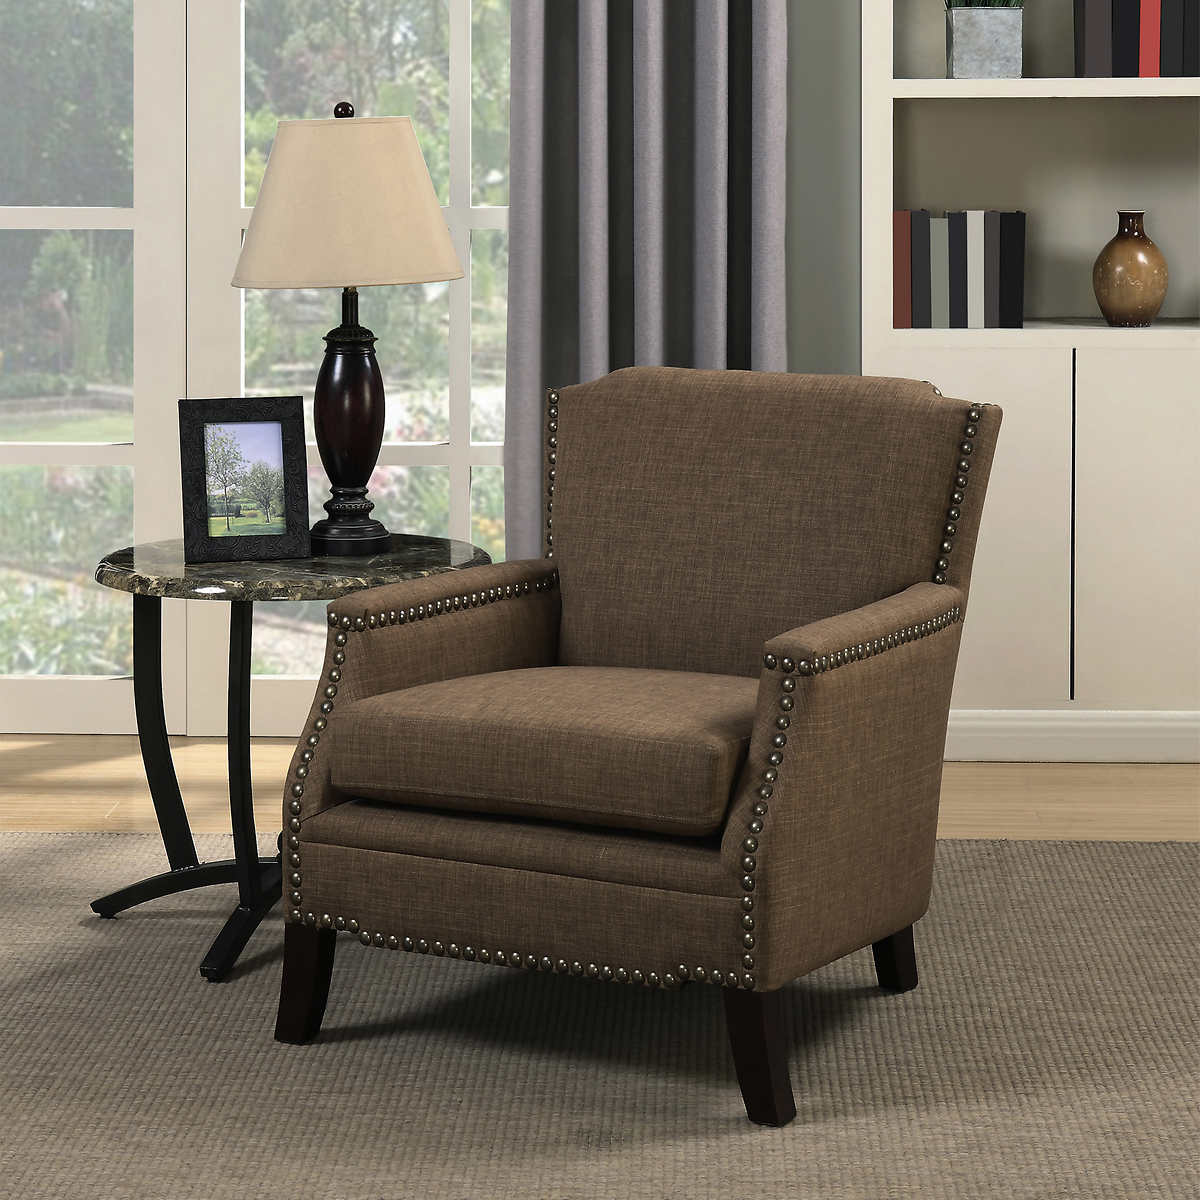 Turquoise and brown accent chair - Bolton Fabric Accent Chair